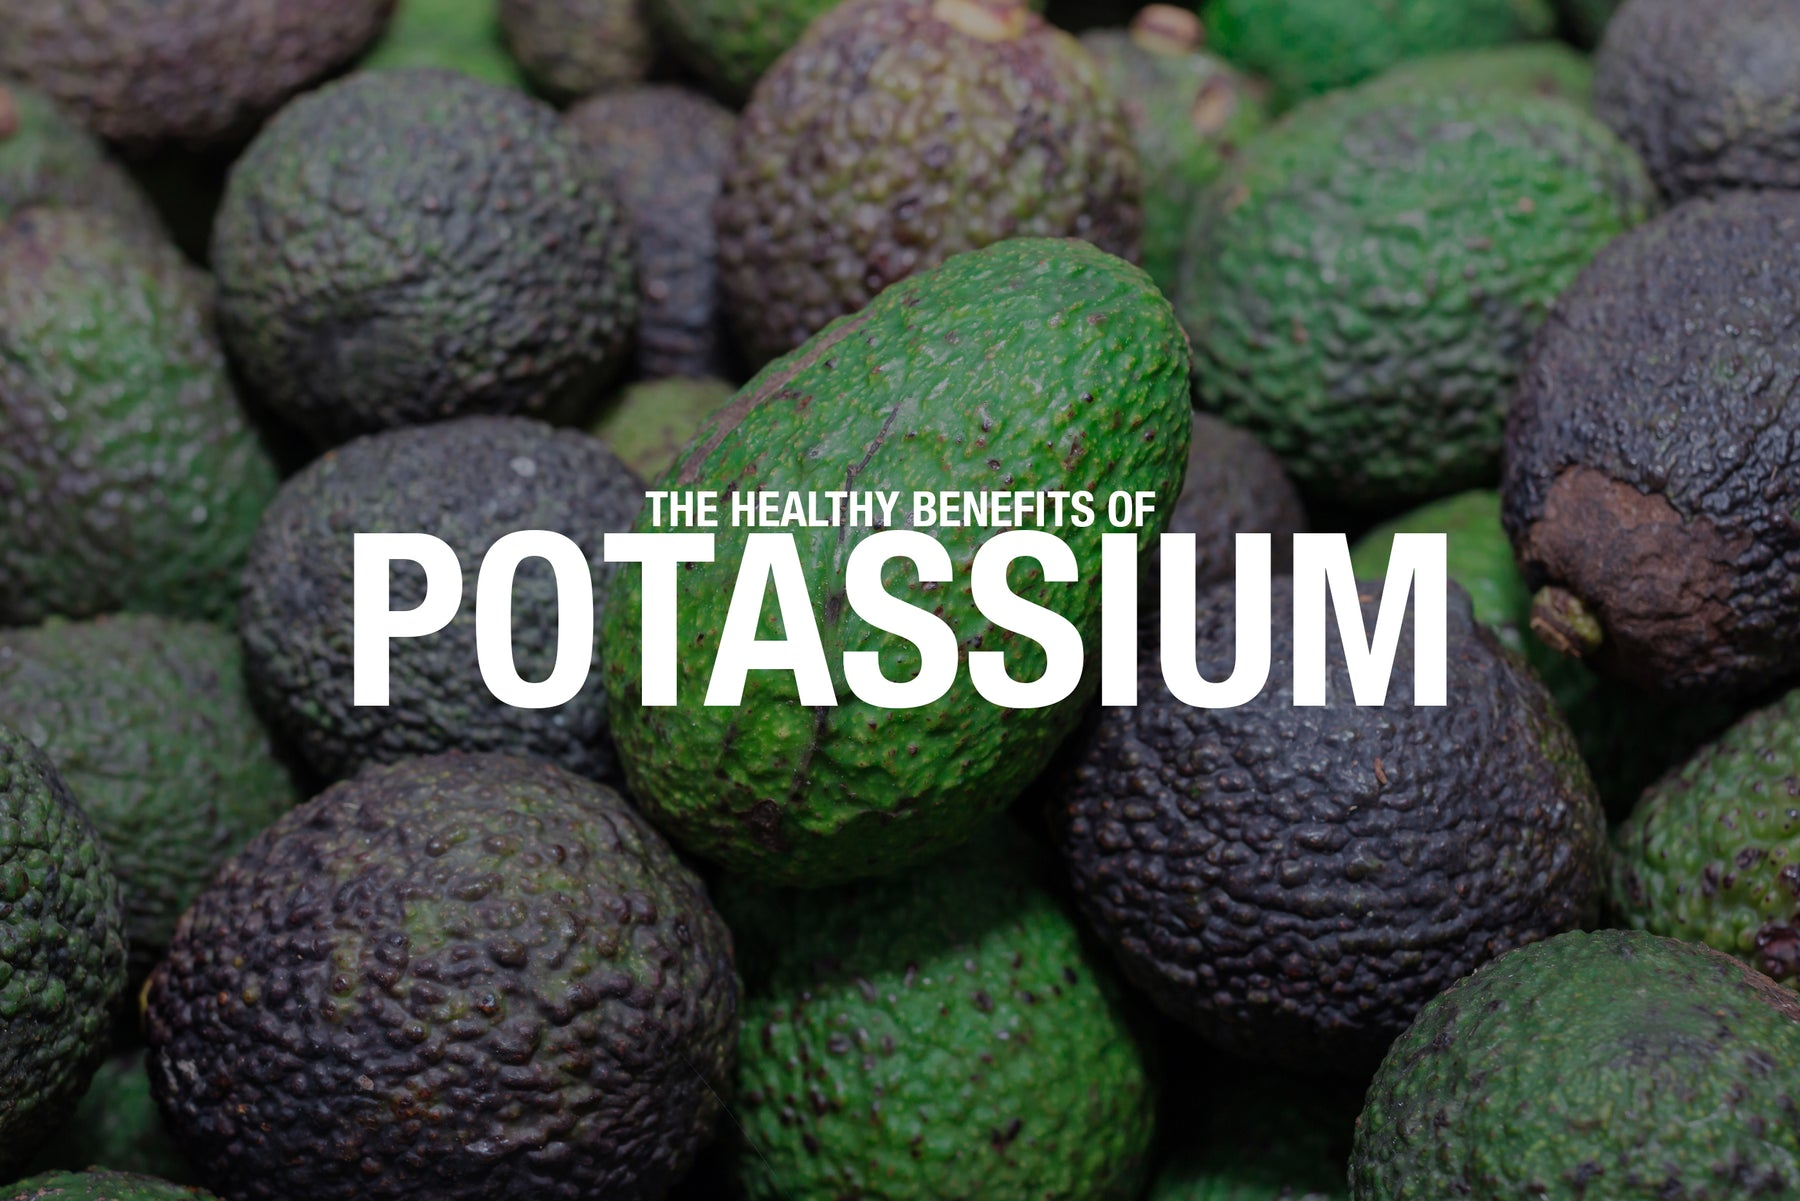 The Healthy Benefits of Potassium